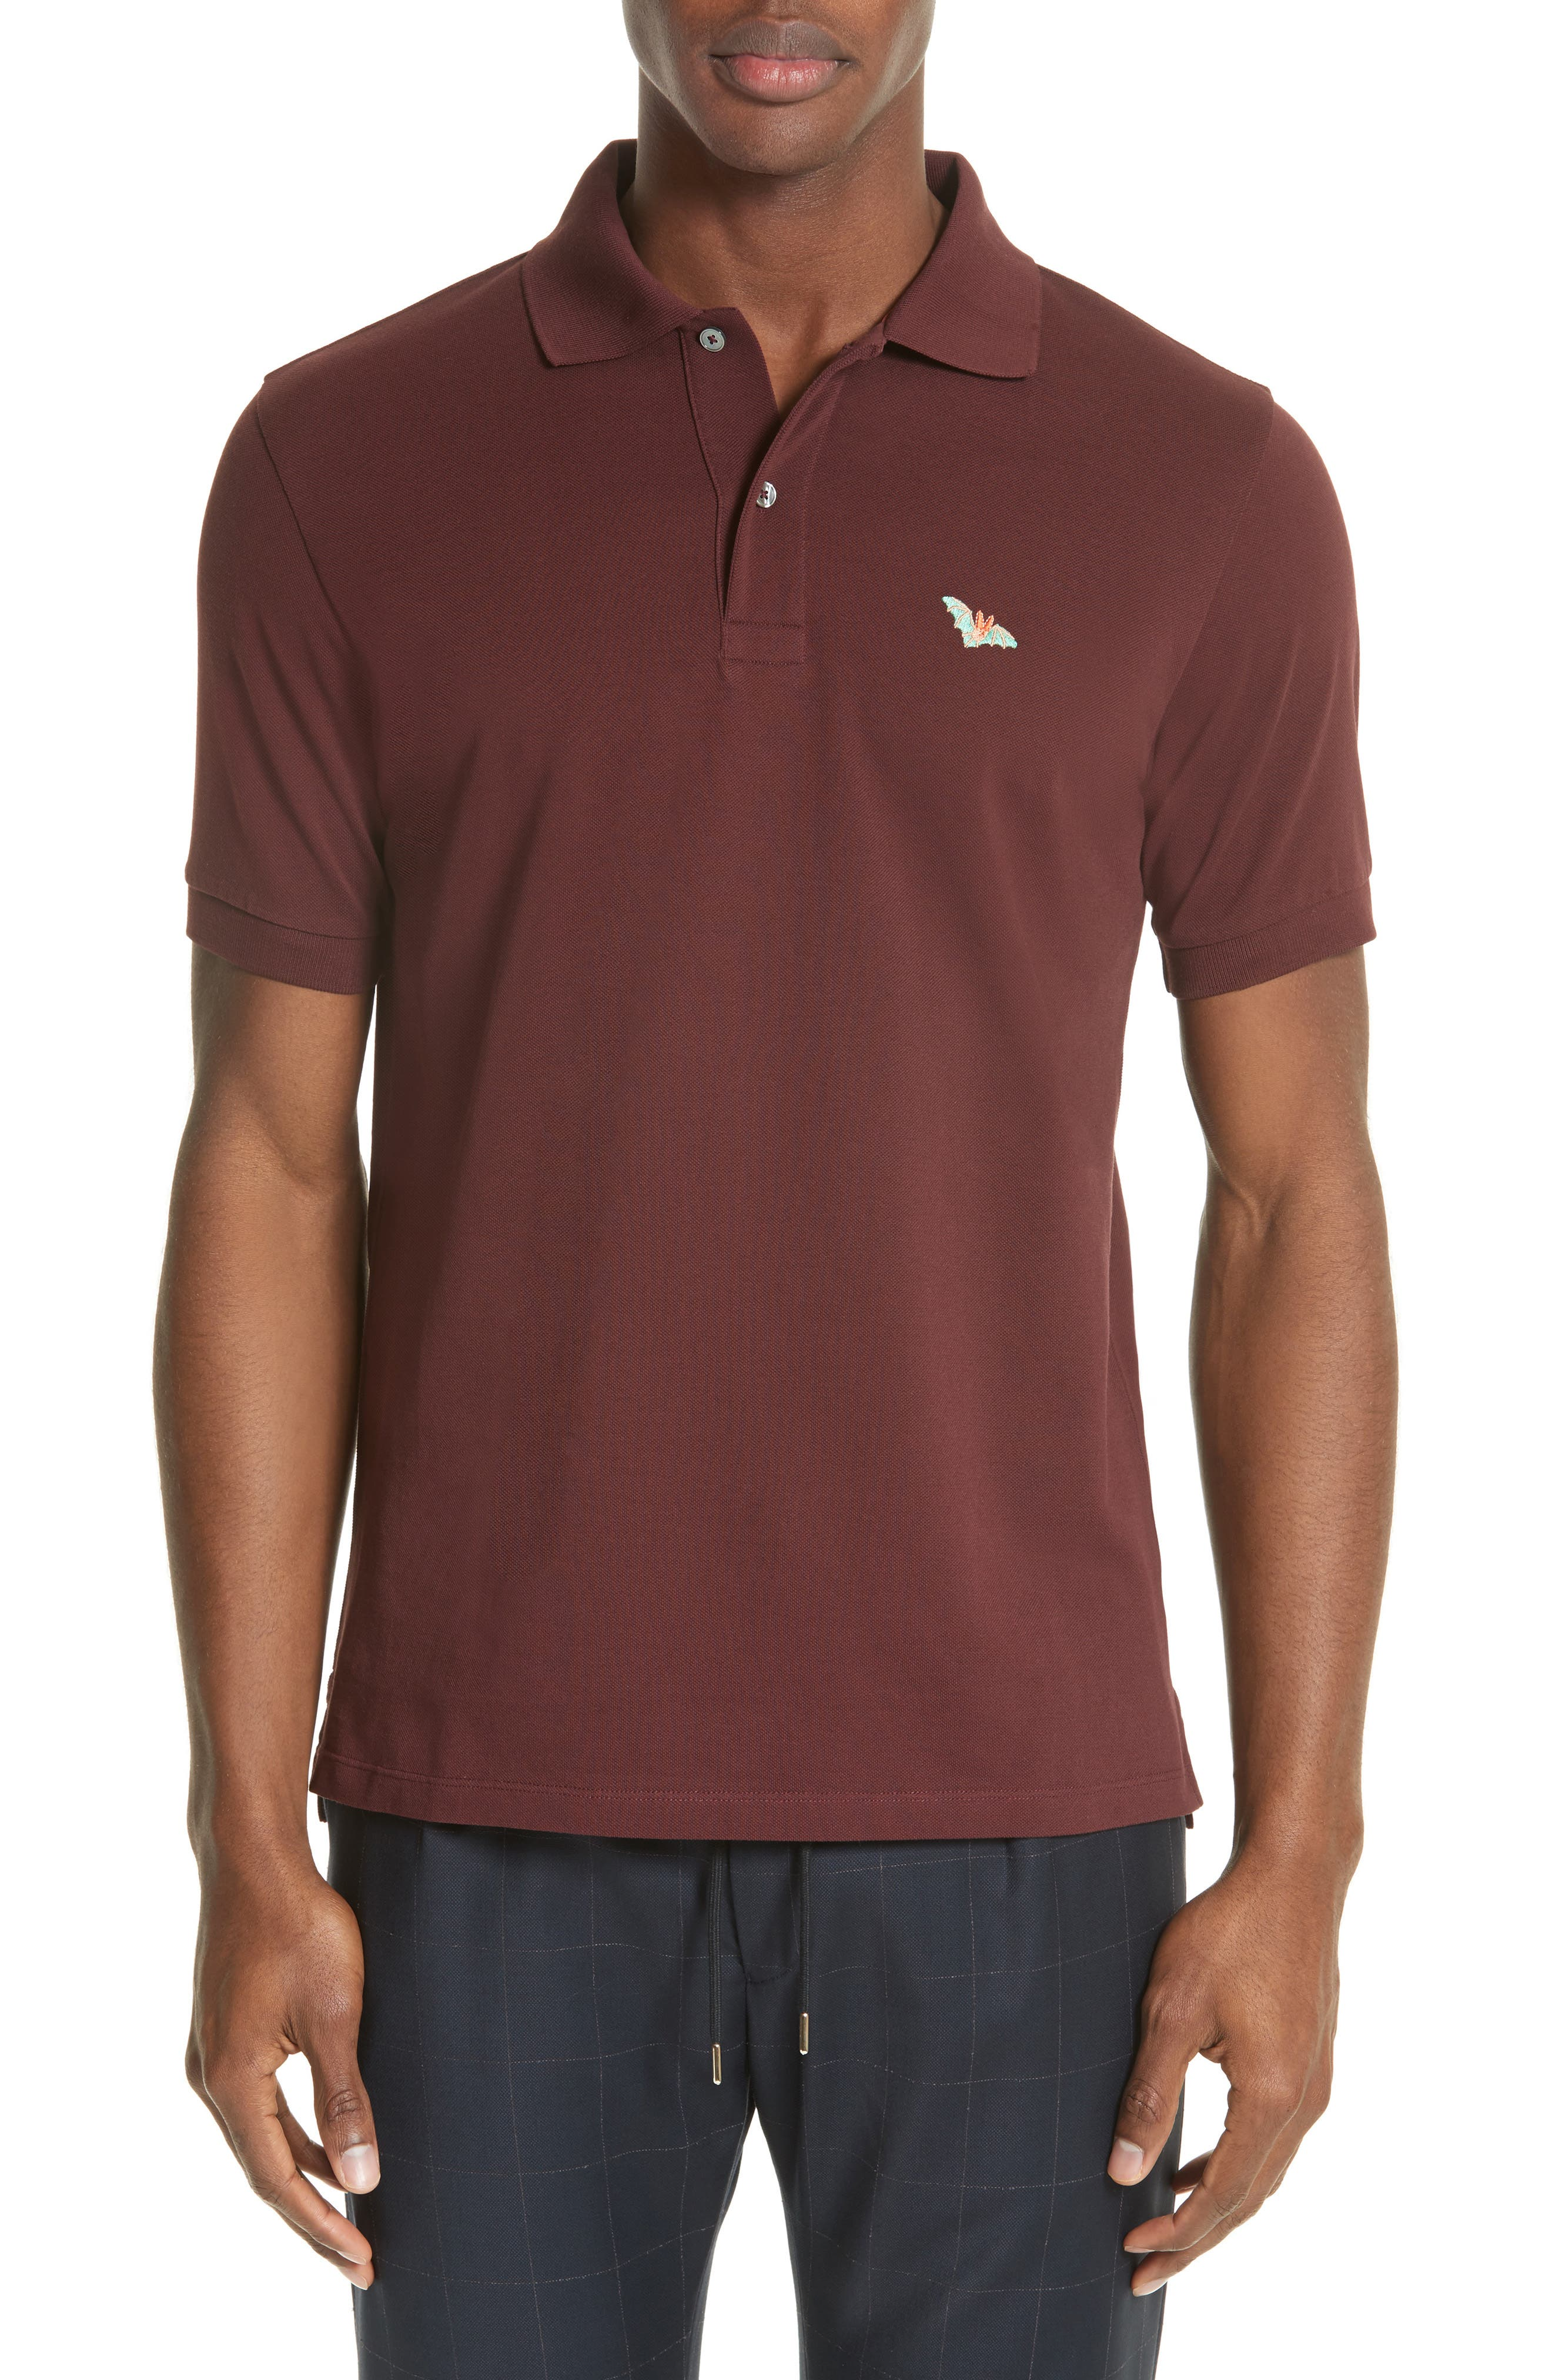 Paul Smith Bat Crest Polo